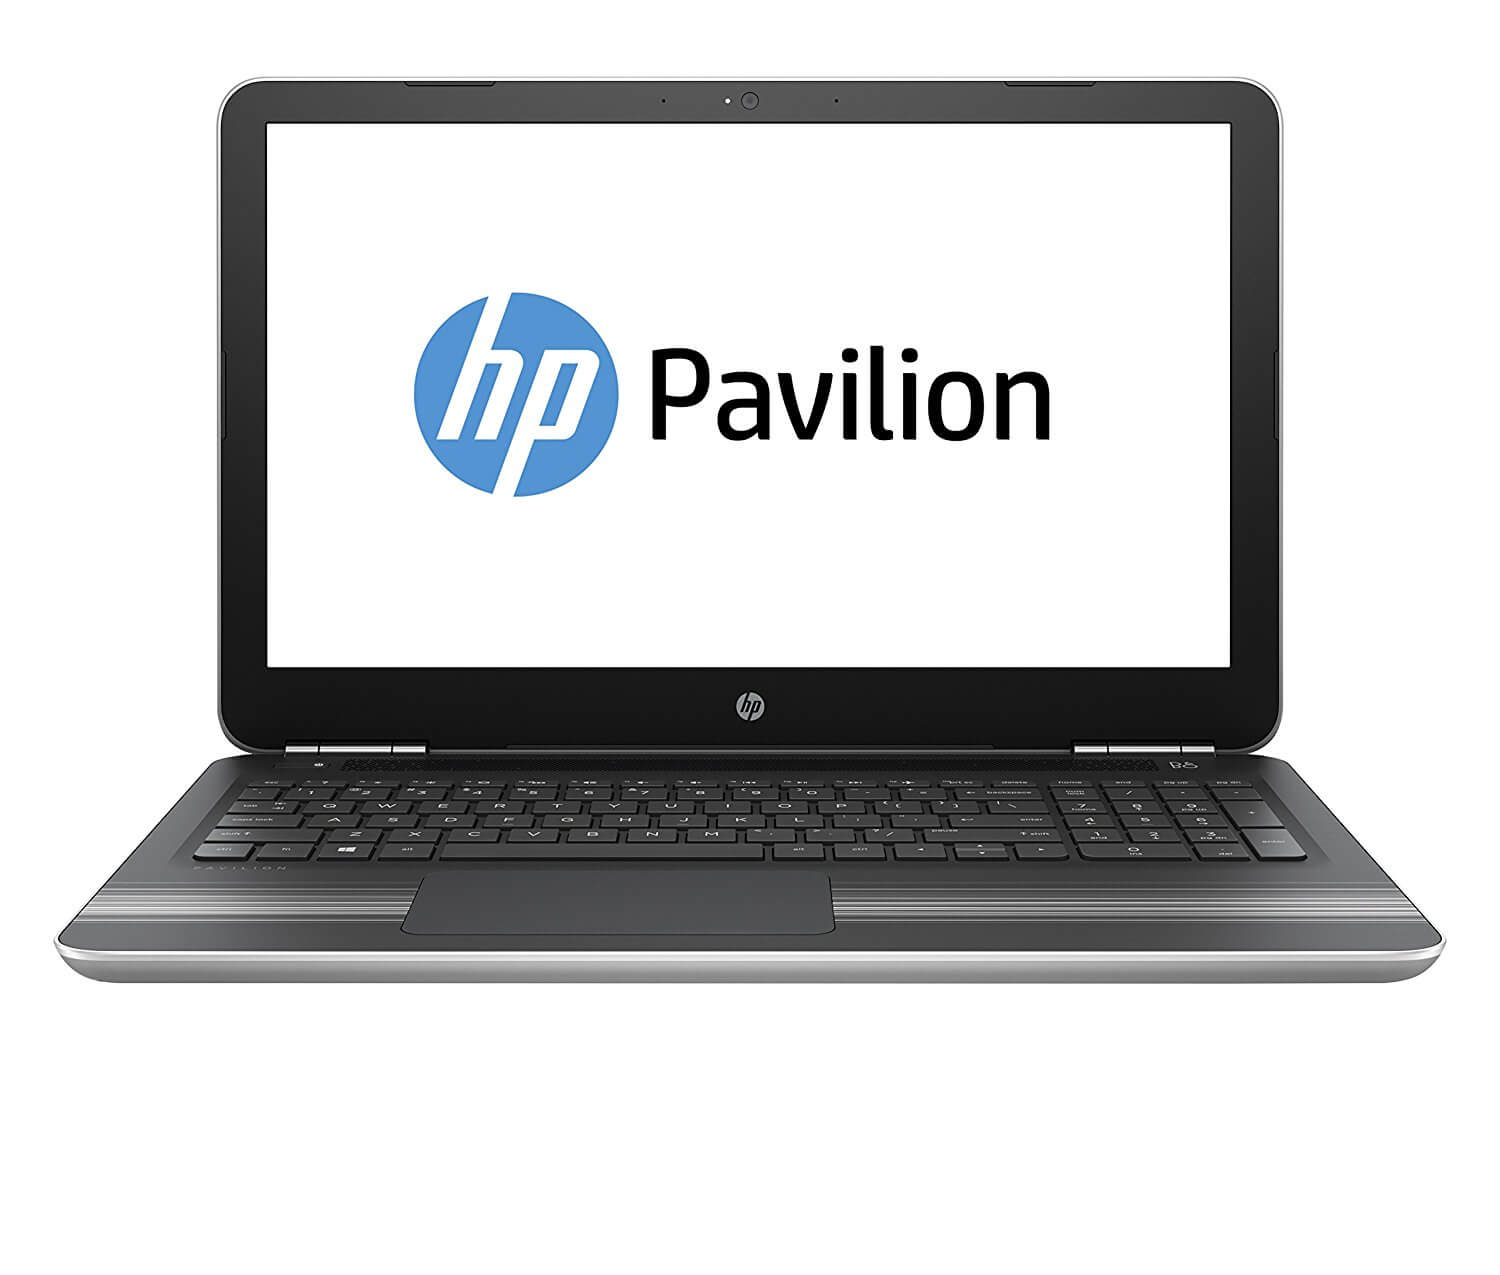 HP Pavilion 15-AU628TX 15.6-inch (7th Gen Core i7-7500U/8GB/1TB/Windows 10 Home/4GB Graphics),Silver